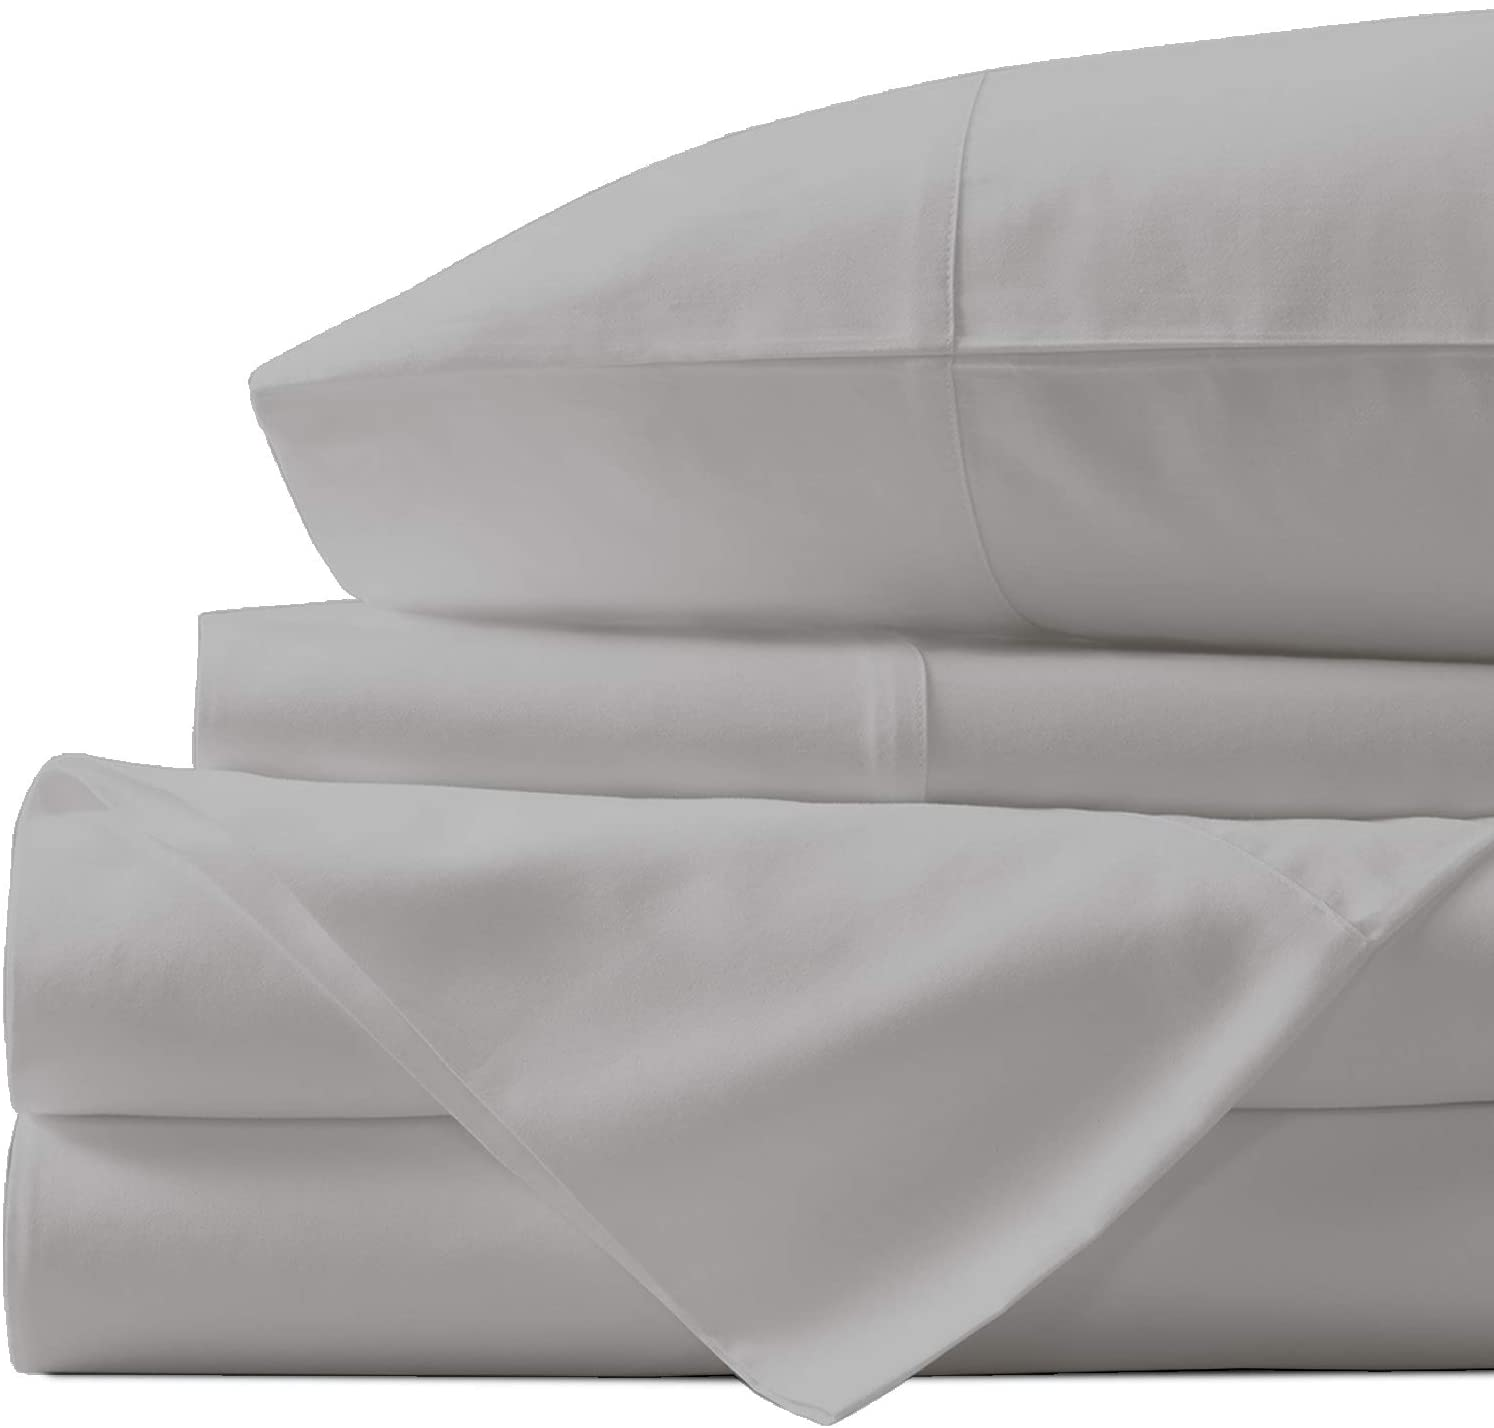 Organic Cotton Select Sheet Item 1000 Thread Count Navy Blue Solid US Sizes